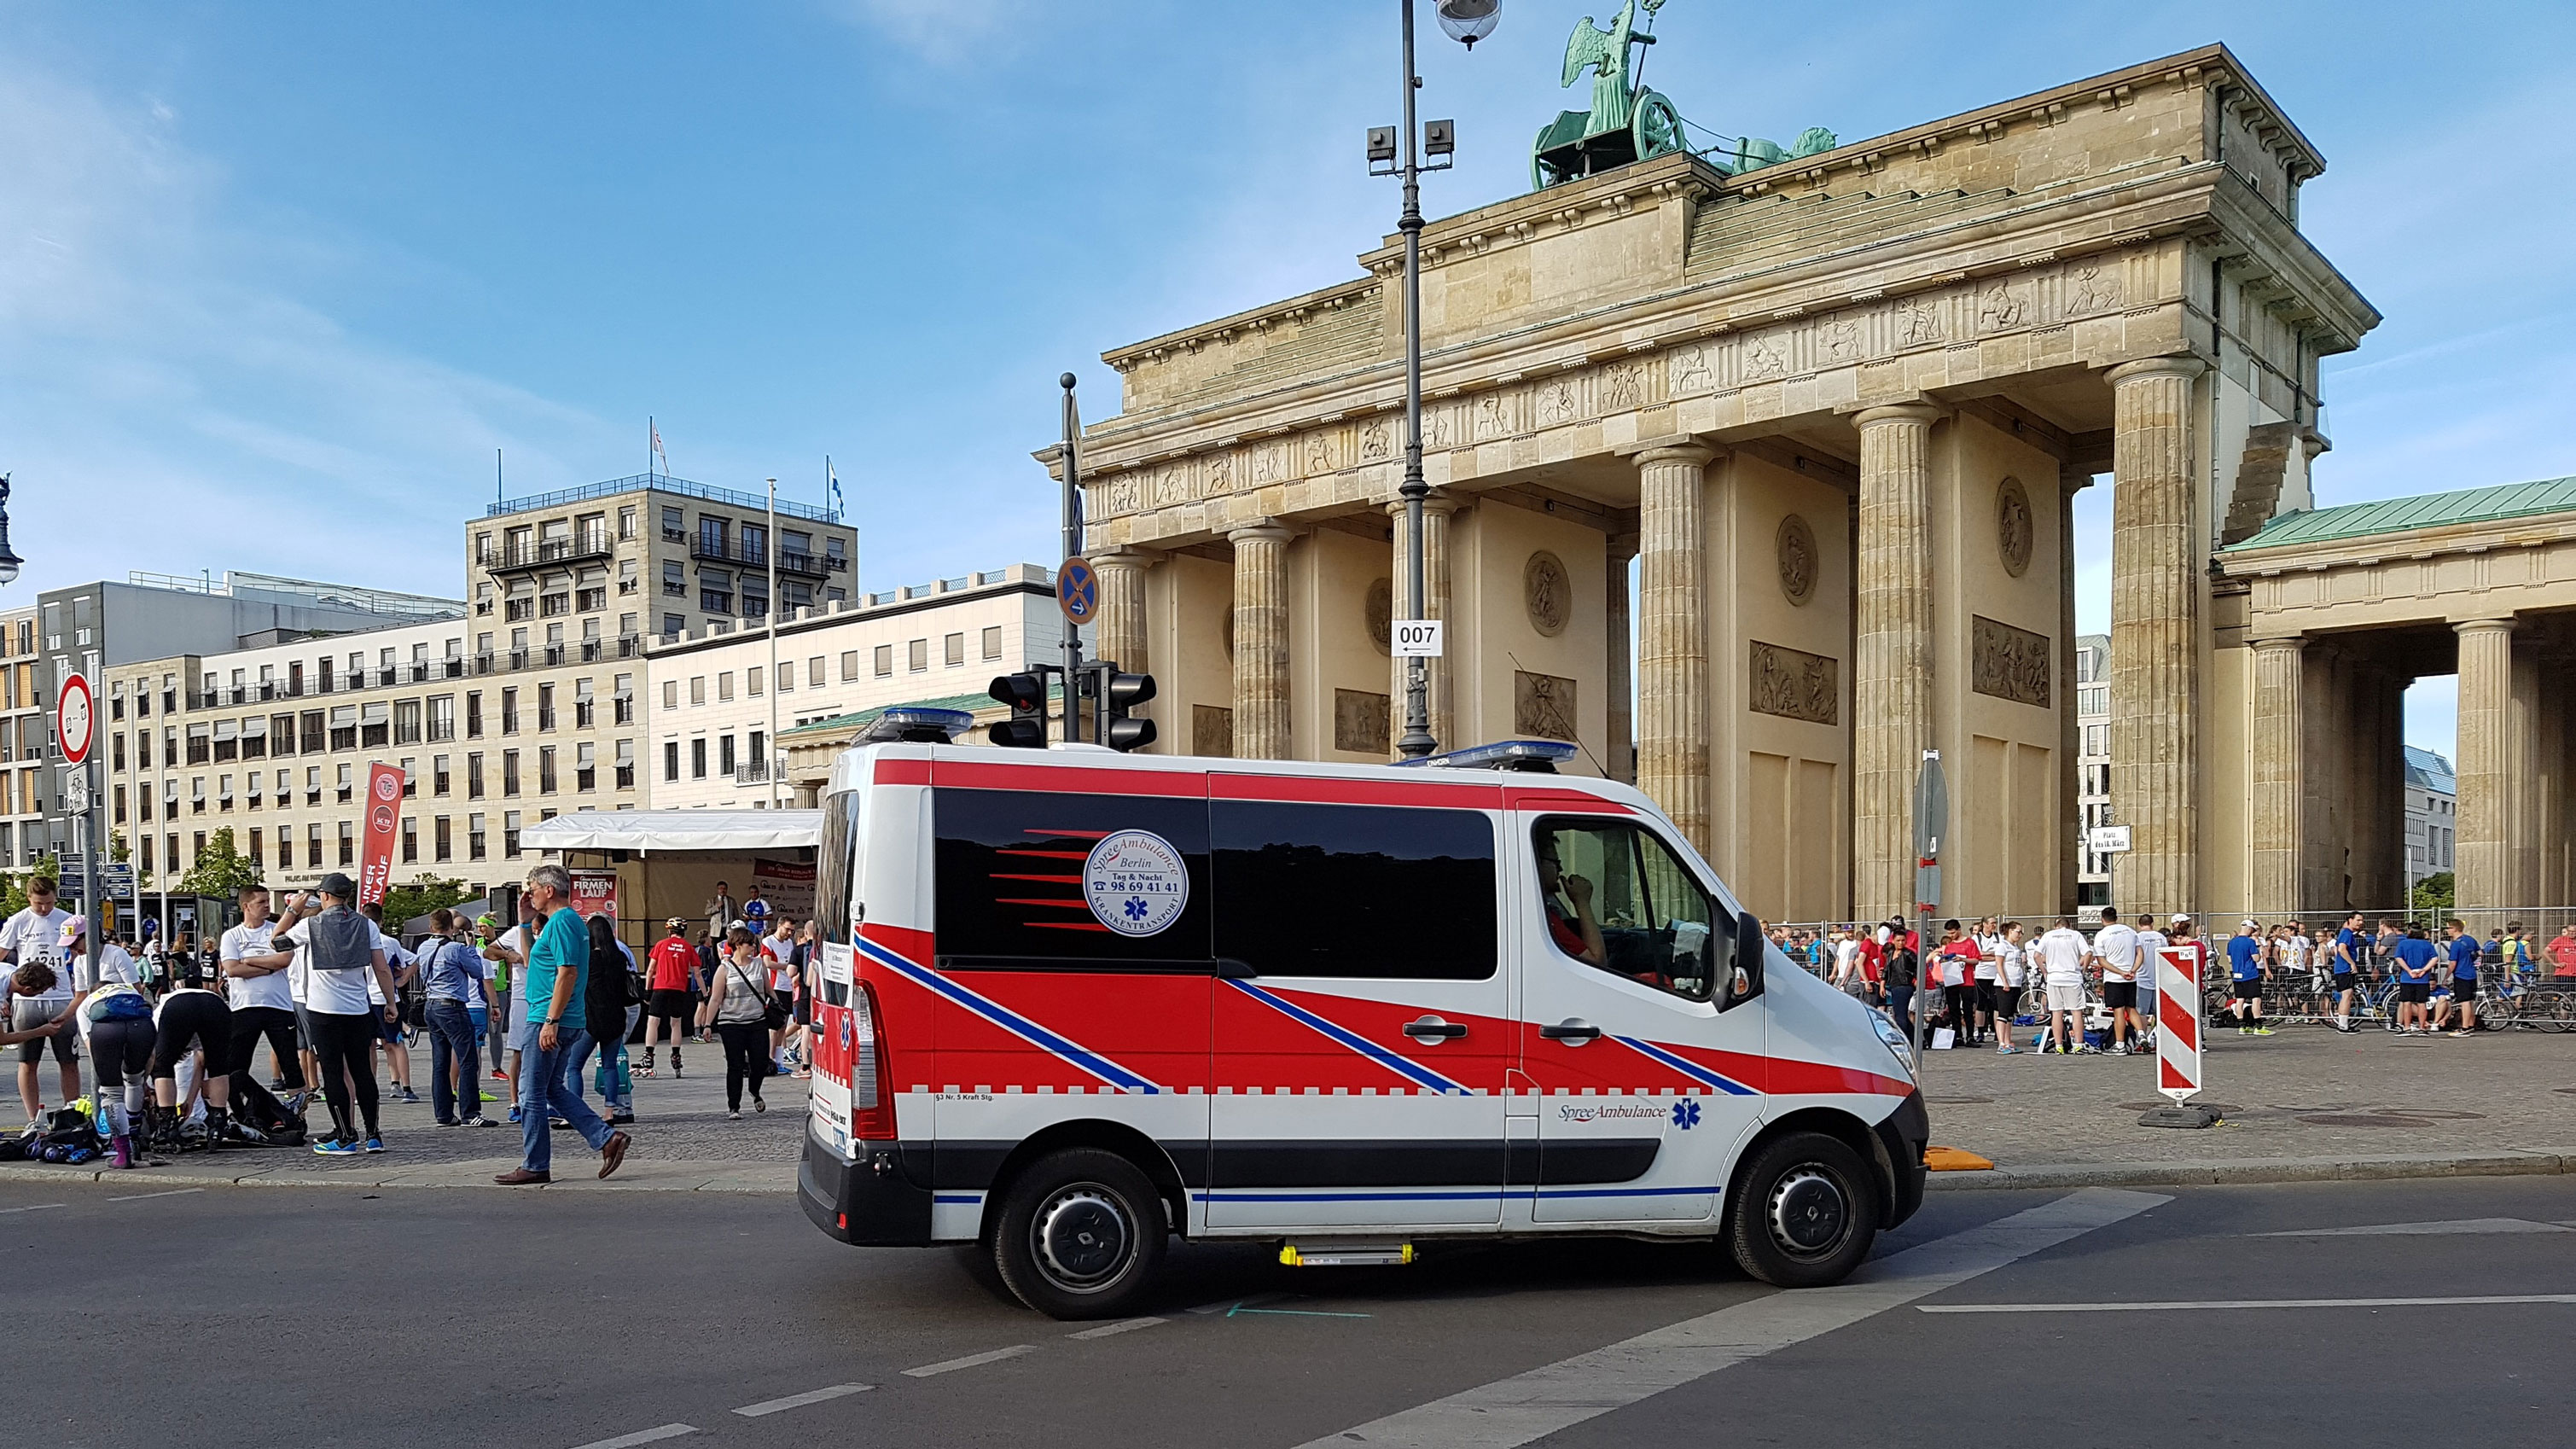 Brandenburger Tor Spree Ambulance - Case Study Spree Ambulance